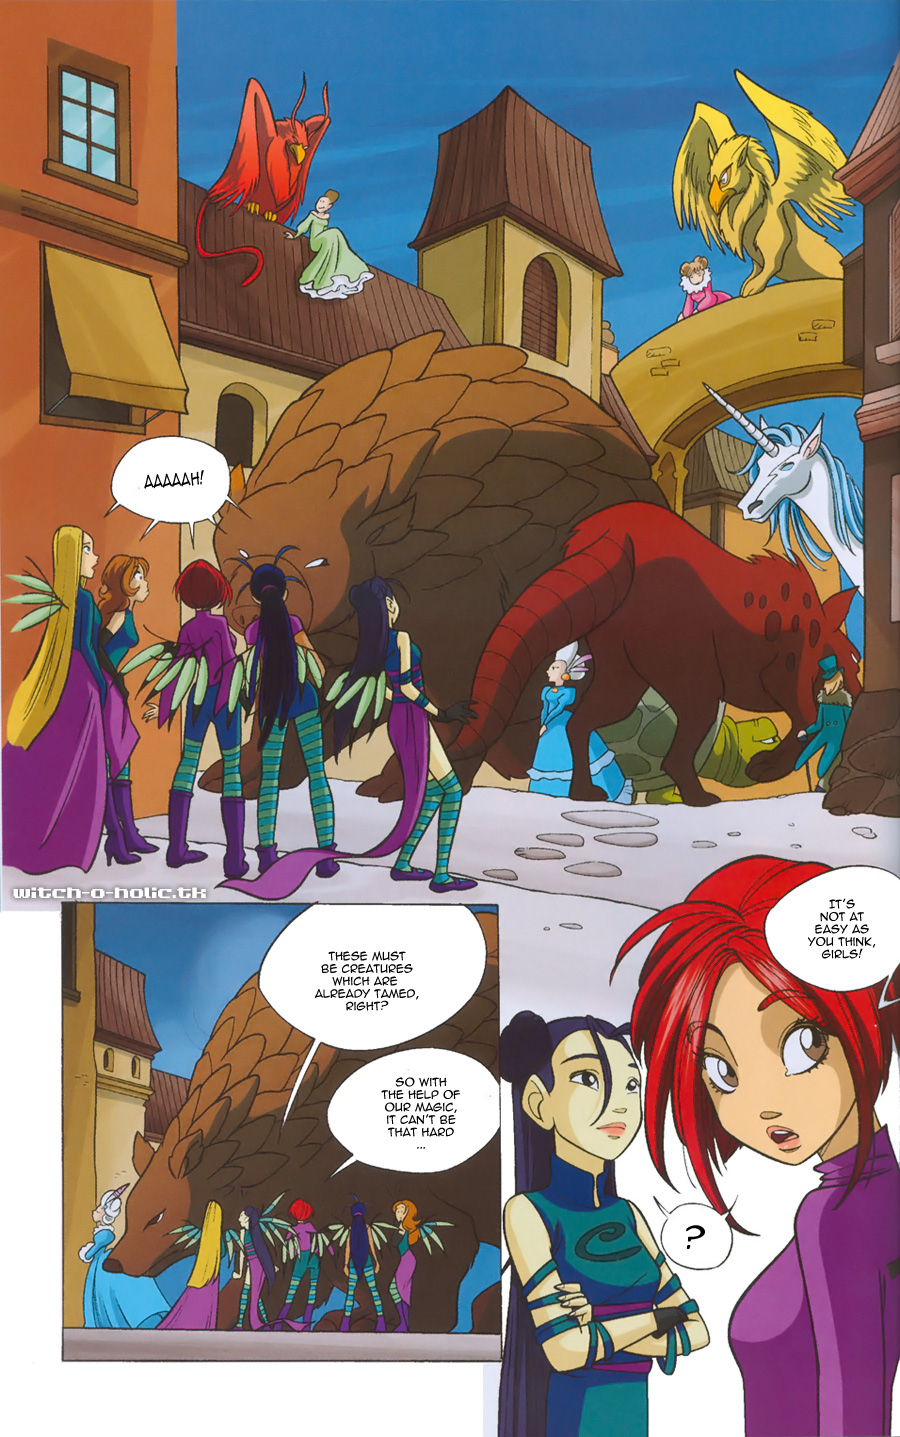 Read online W.i.t.c.h. comic -  Issue #135 - 6